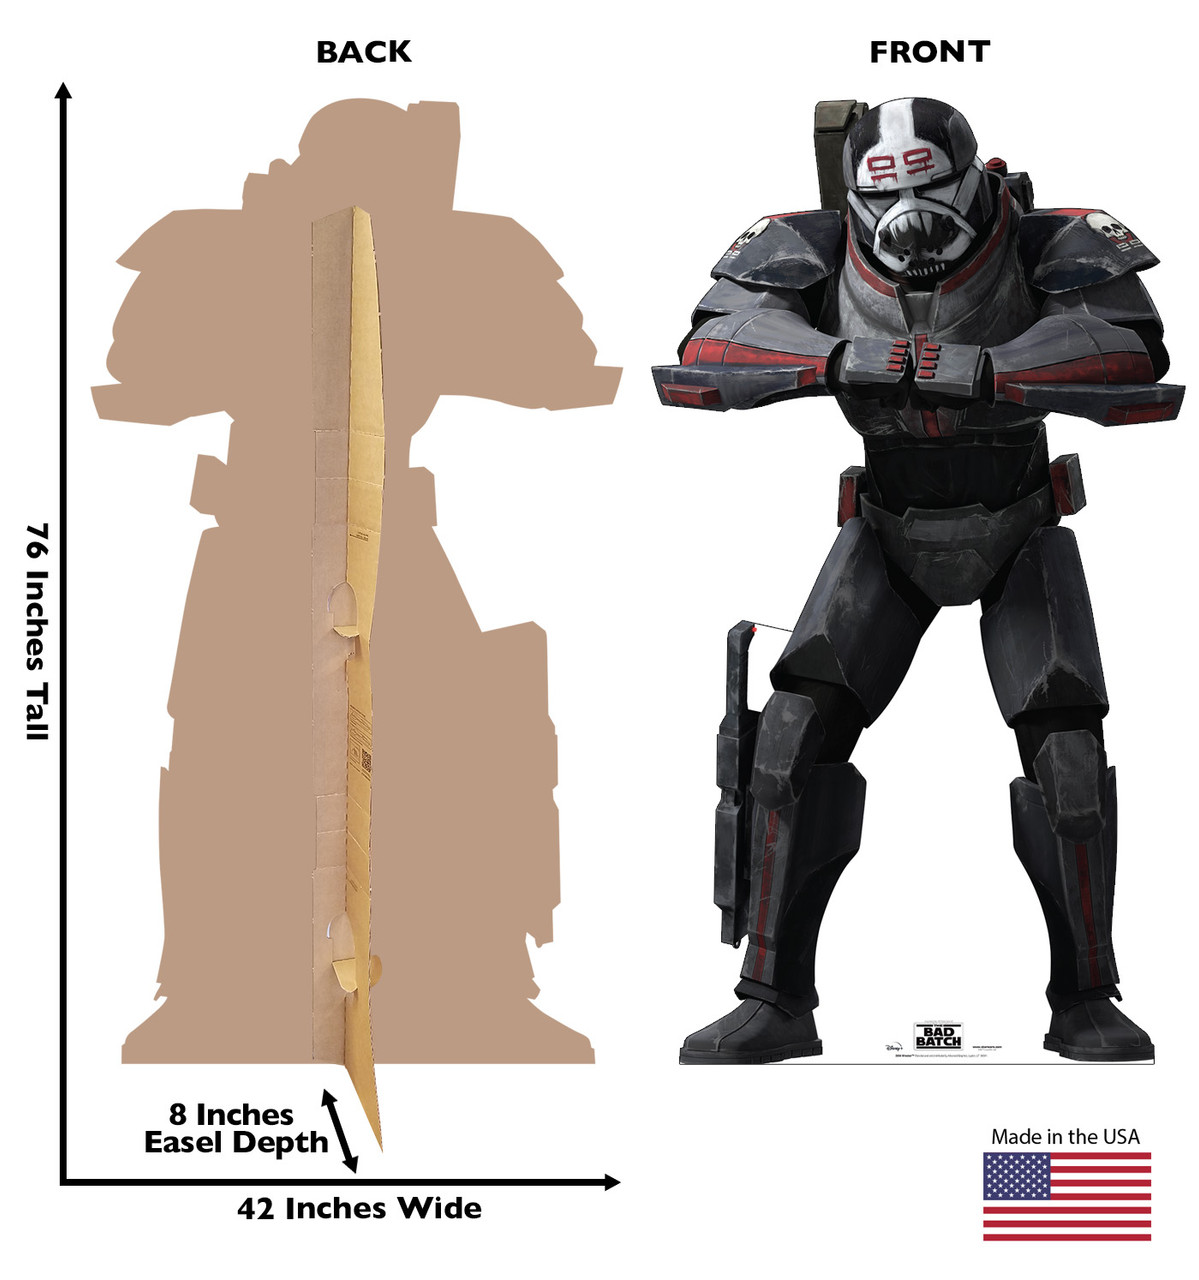 Life-size cardboard standee of Wrecker from The Bad Batch on Disney+ with front and back dimensions.